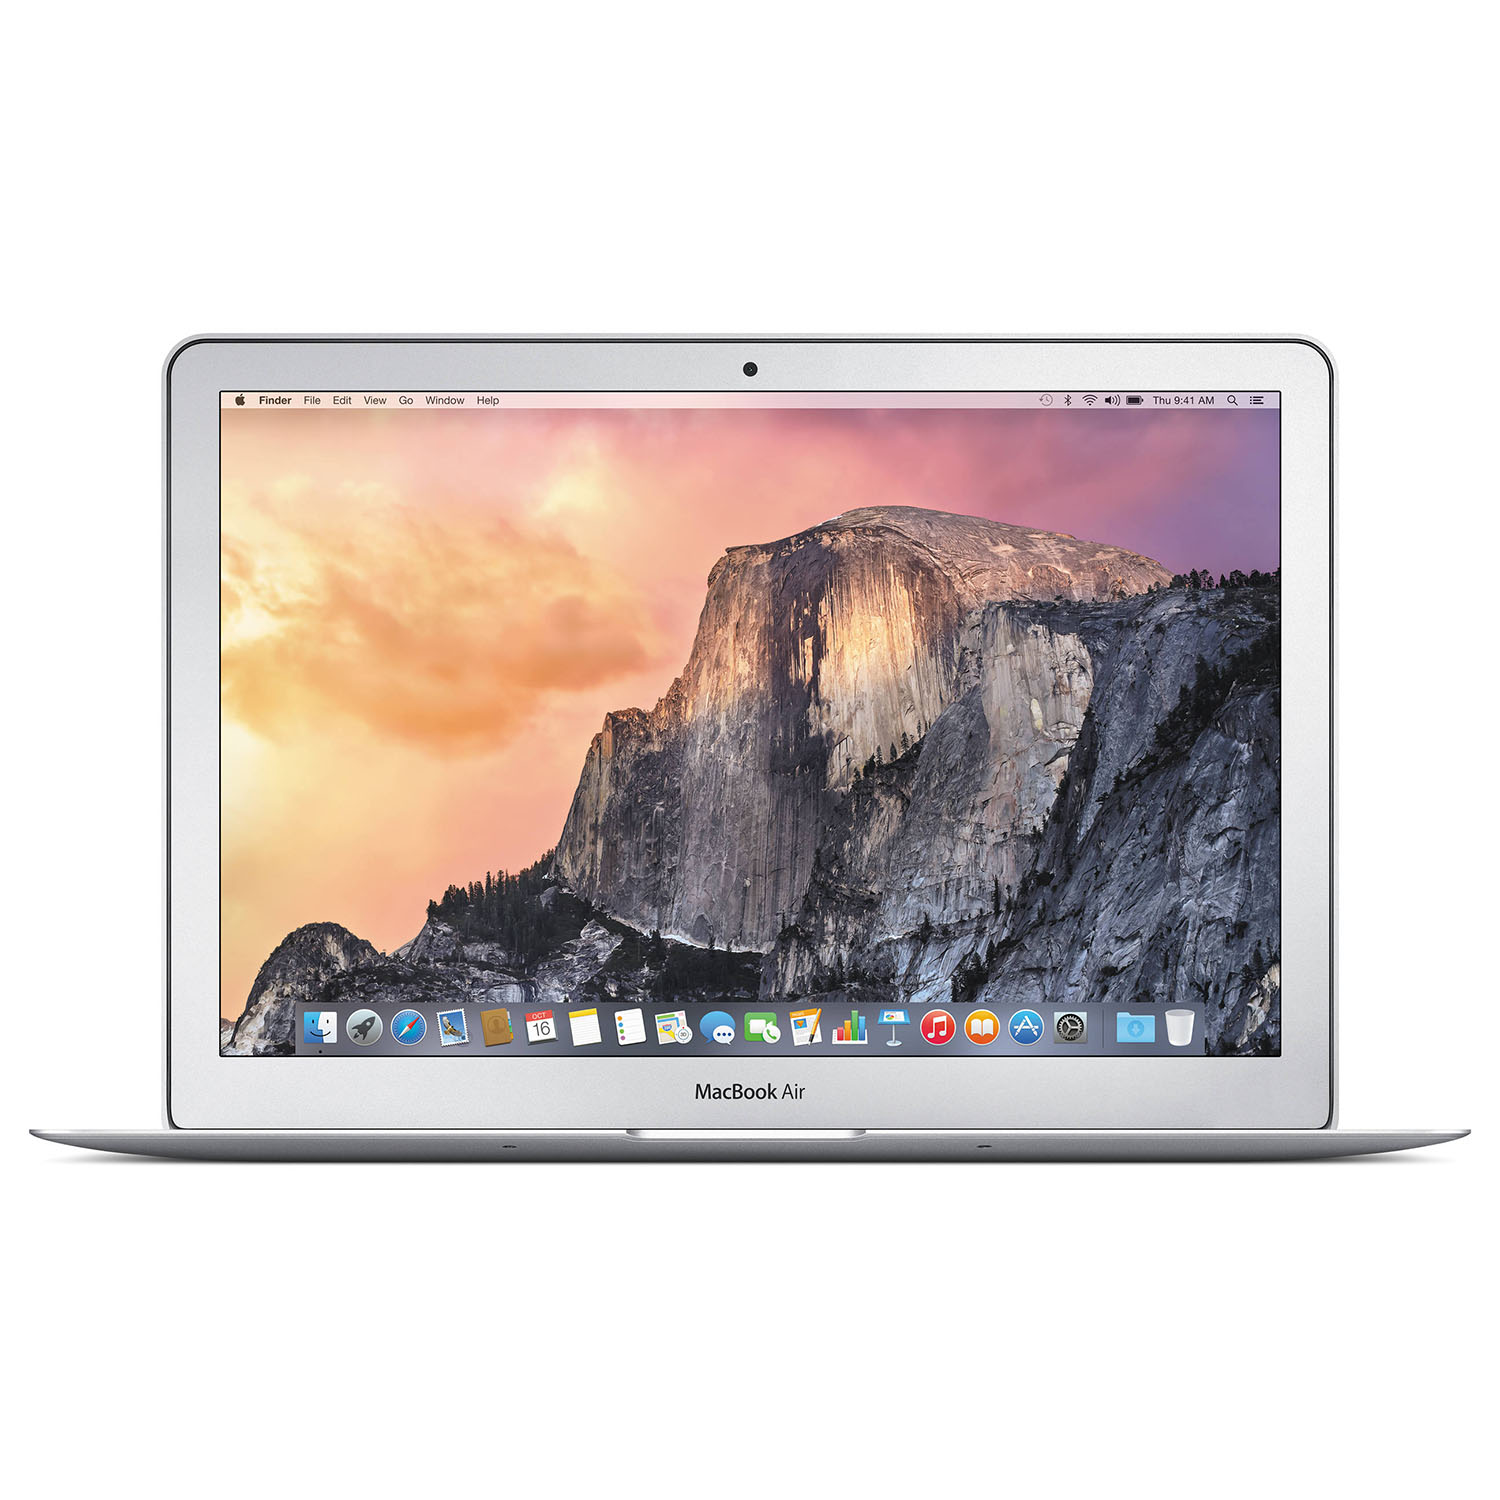 Apple MMGG2LLA MacBook Air 13.3-Inch Laptop 1.6GHz Dual-Core Intel Core i5 256GB by Apple